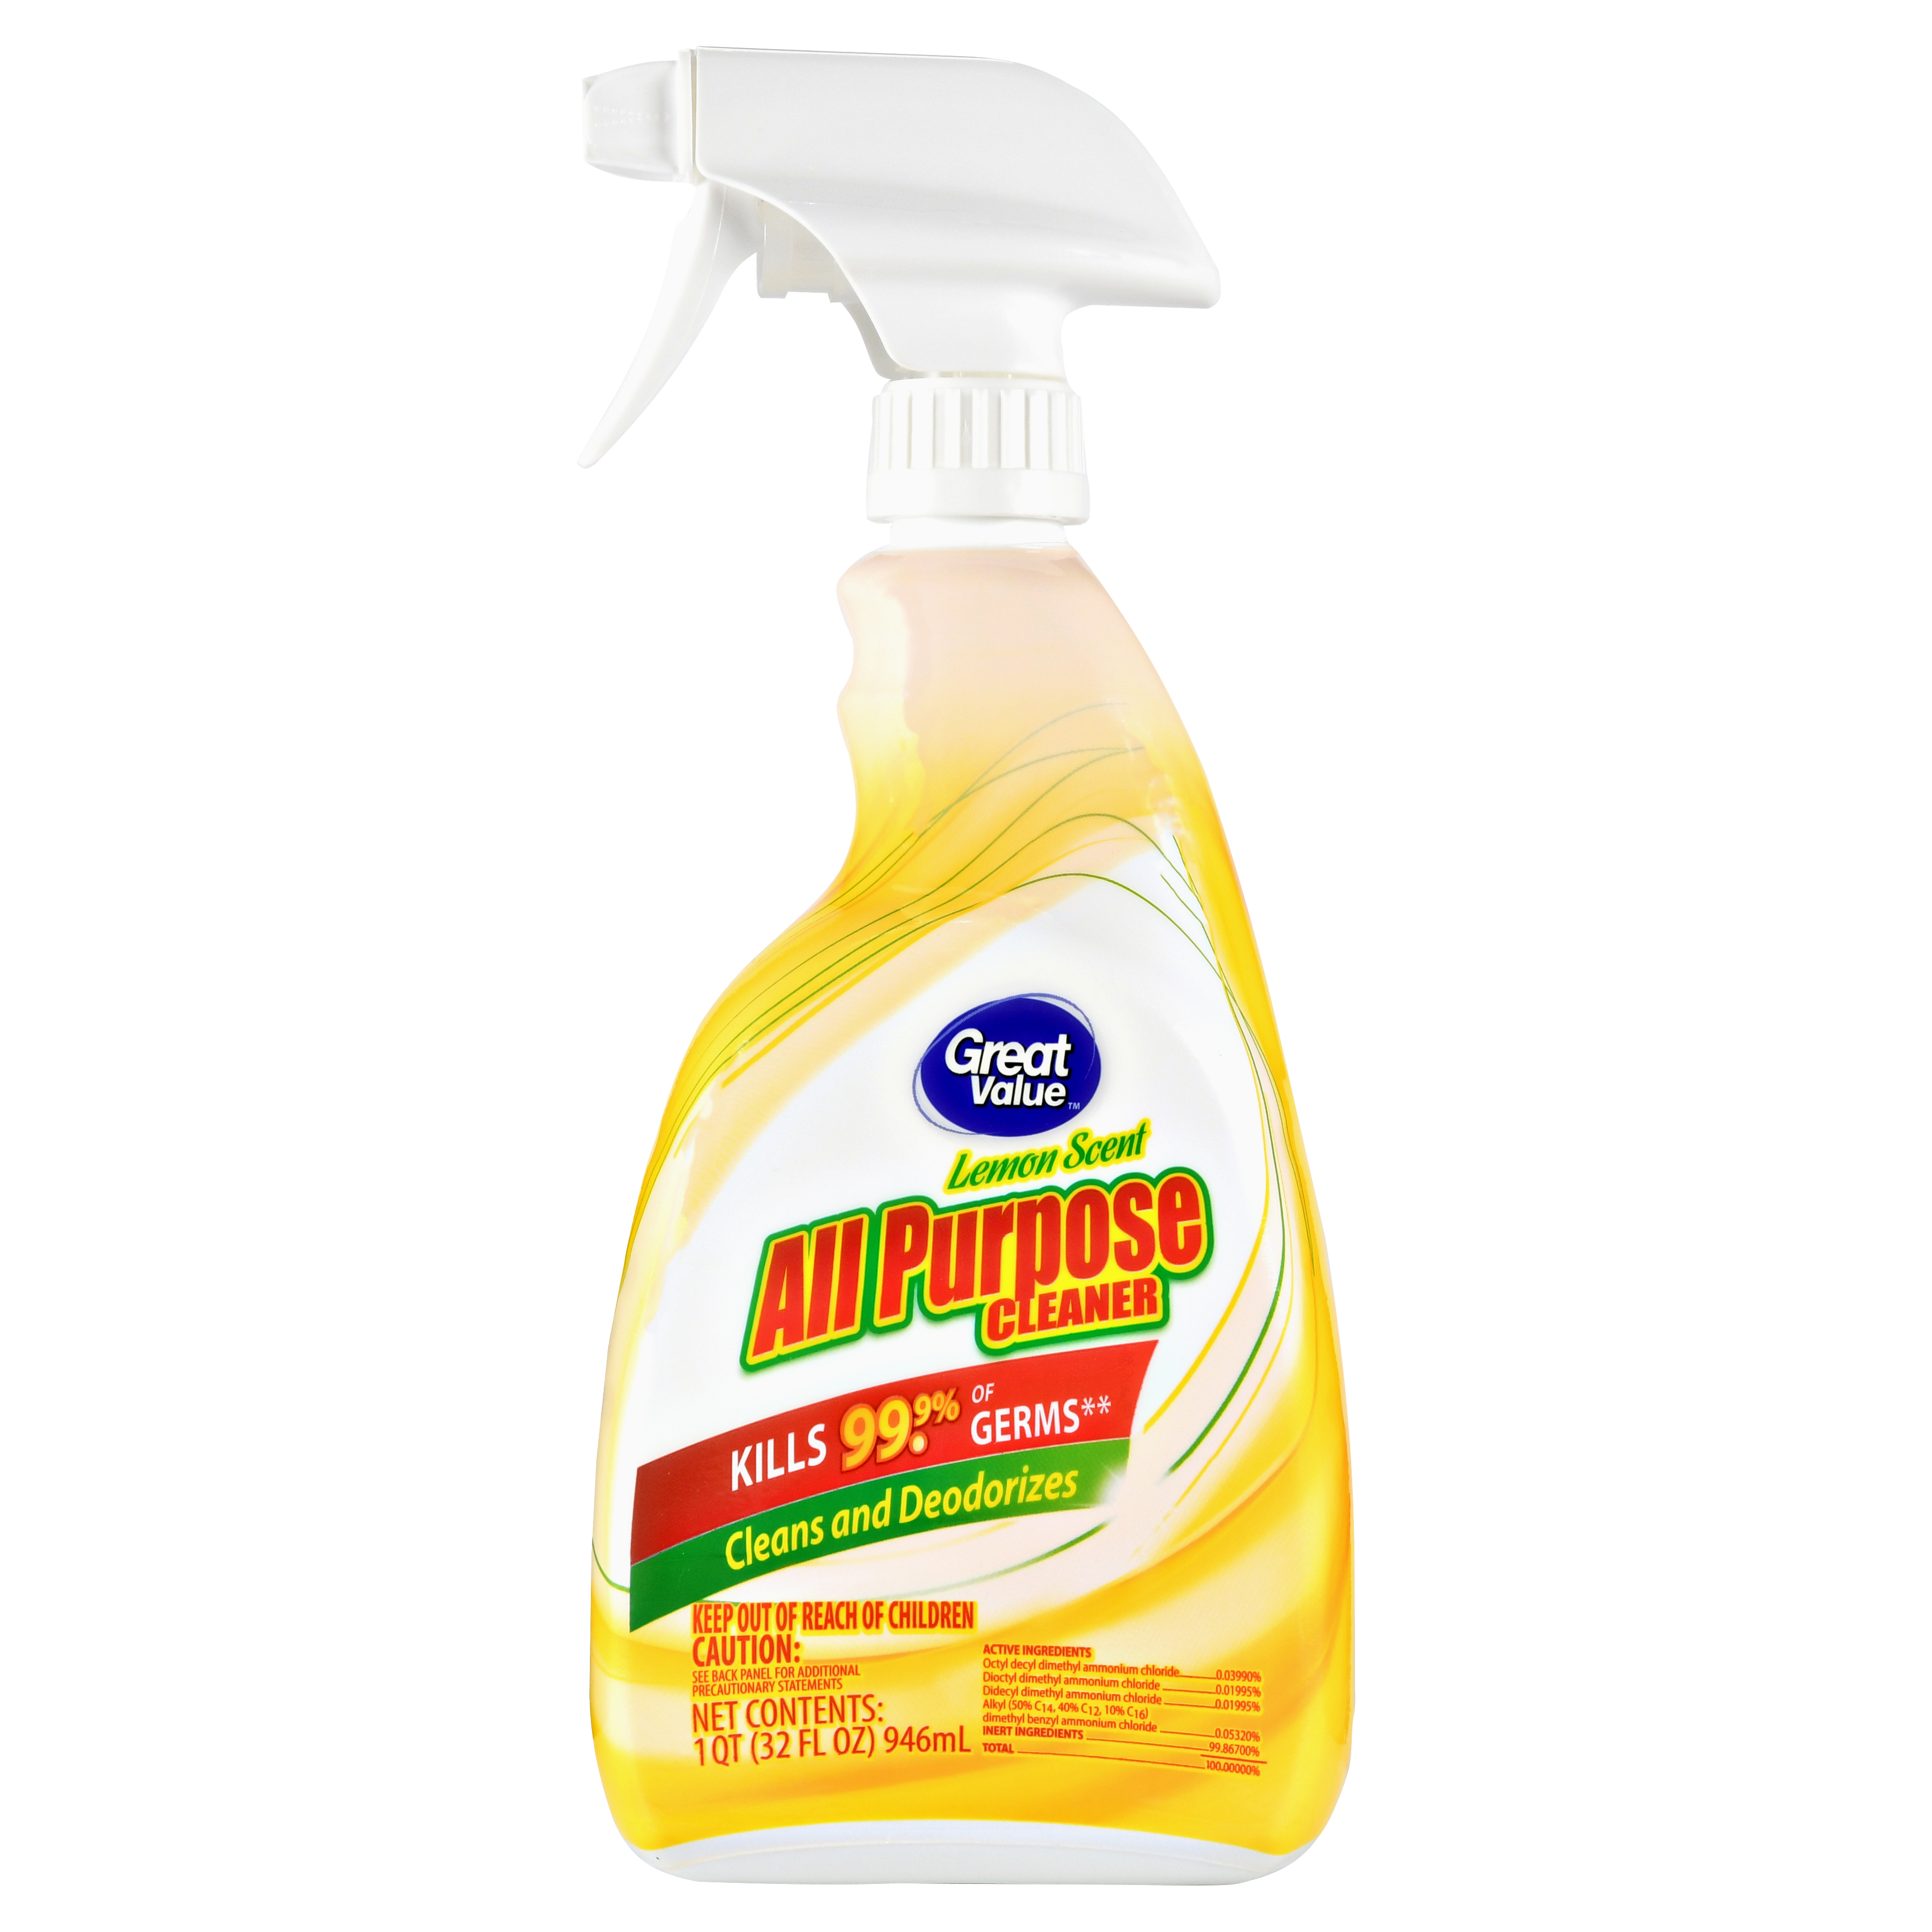 Great Value Lemon Scent All Purpose Cleaner, 32 Fl Oz by Great Value